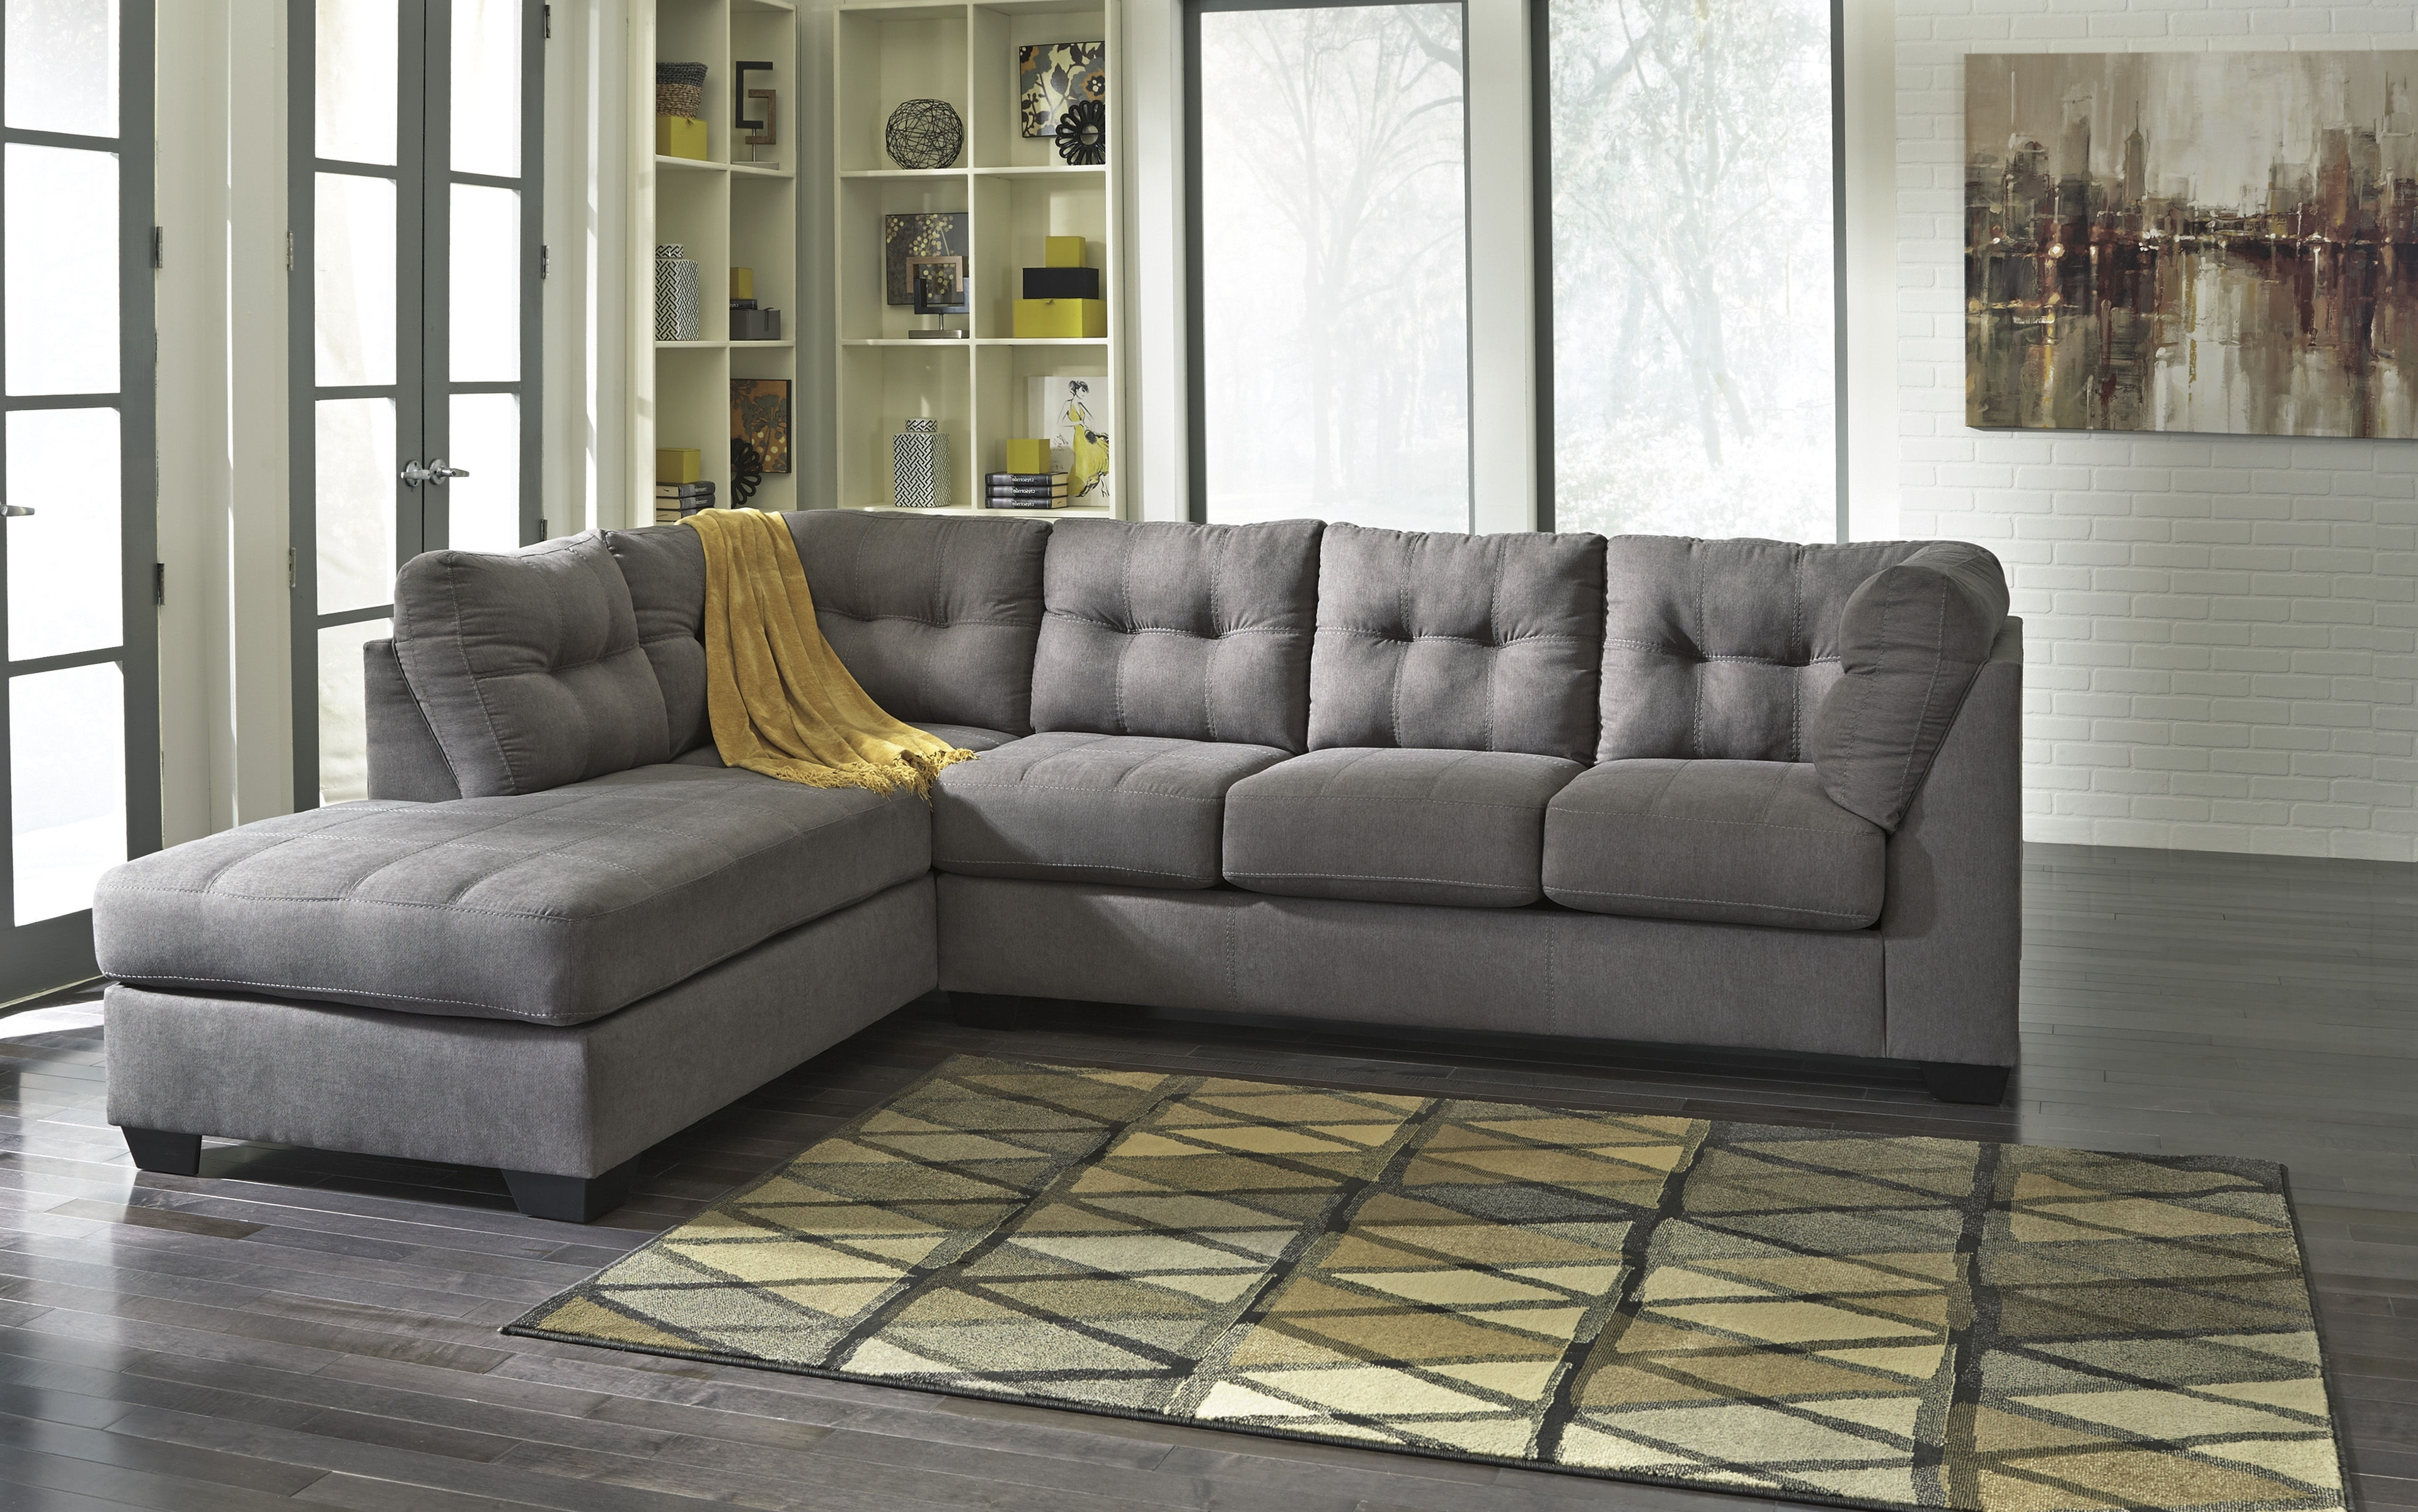 The Classy Home Regarding Sectional Sofas That Come In Pieces (View 18 of 20)